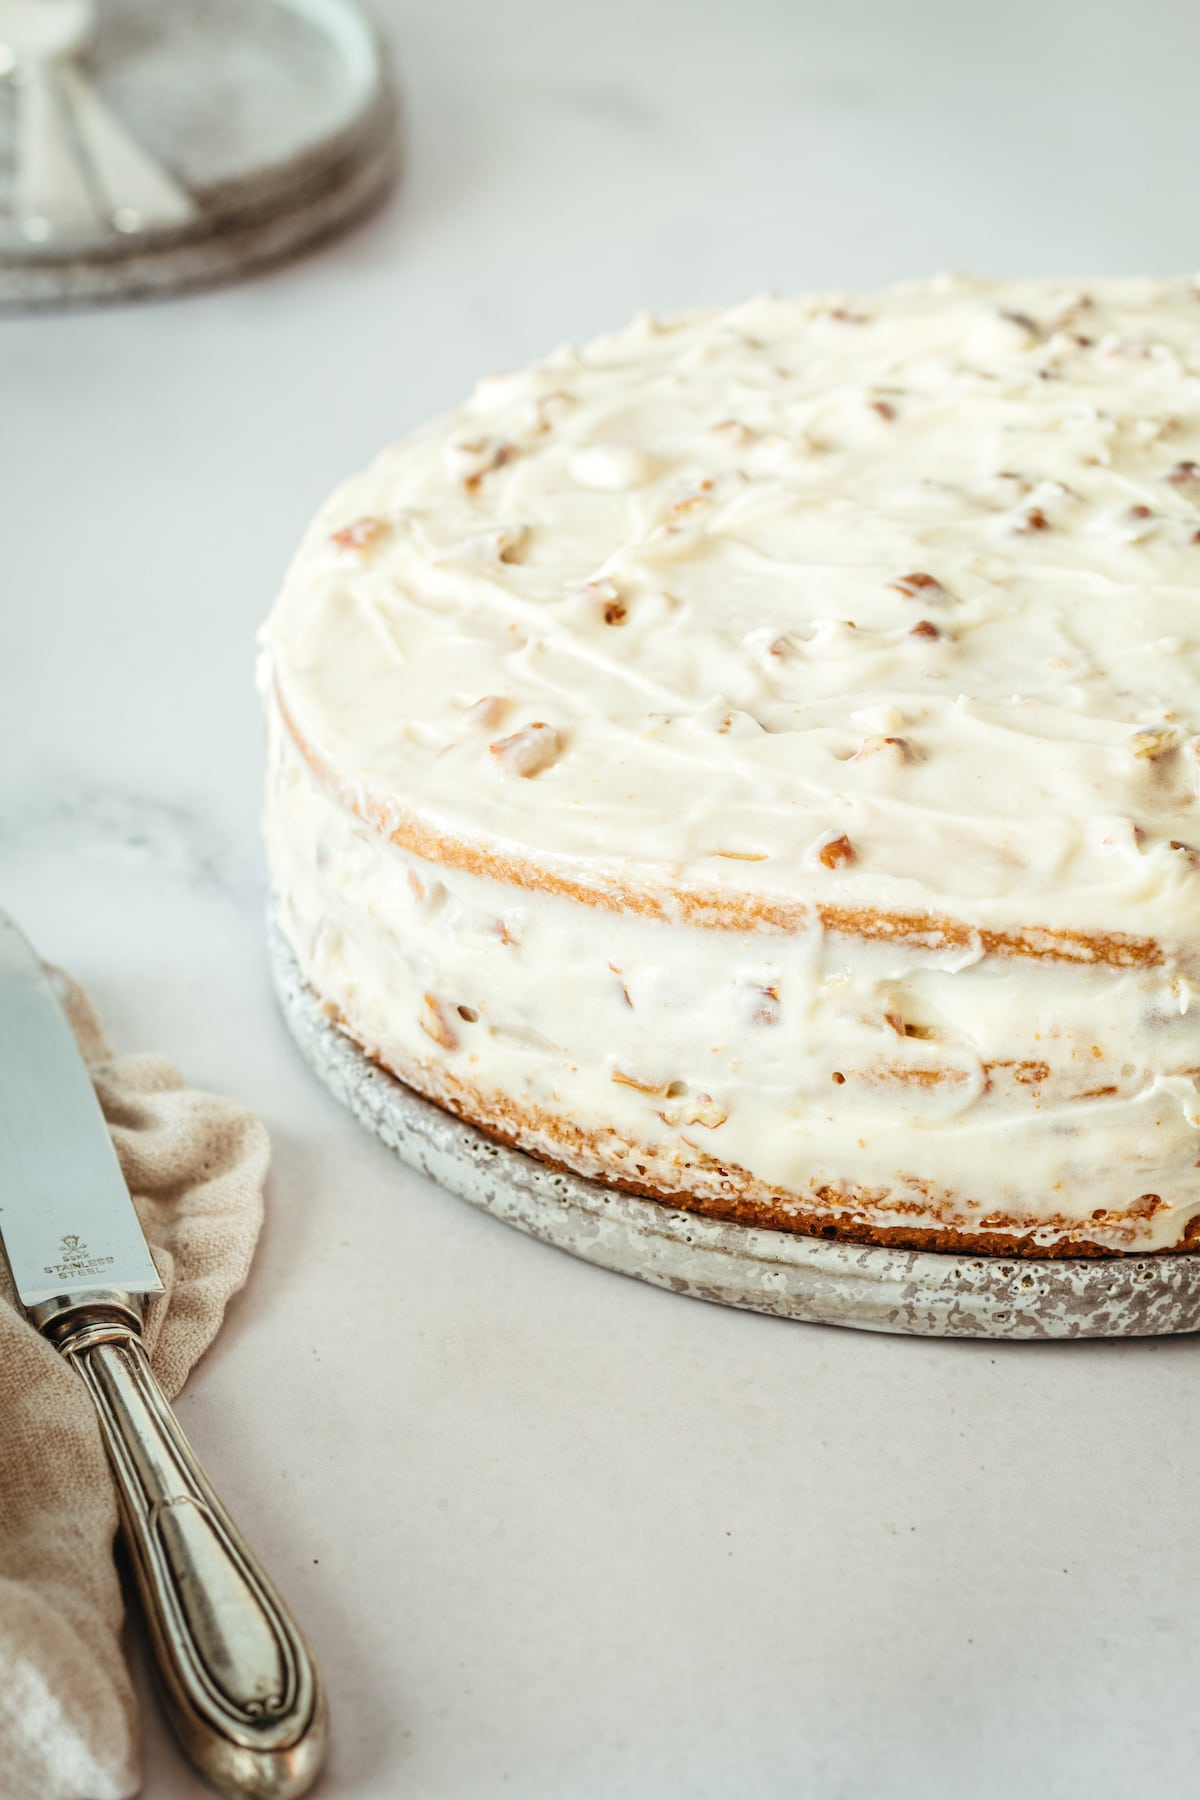 Whole Italian Cream Cake on cake plate after frosting